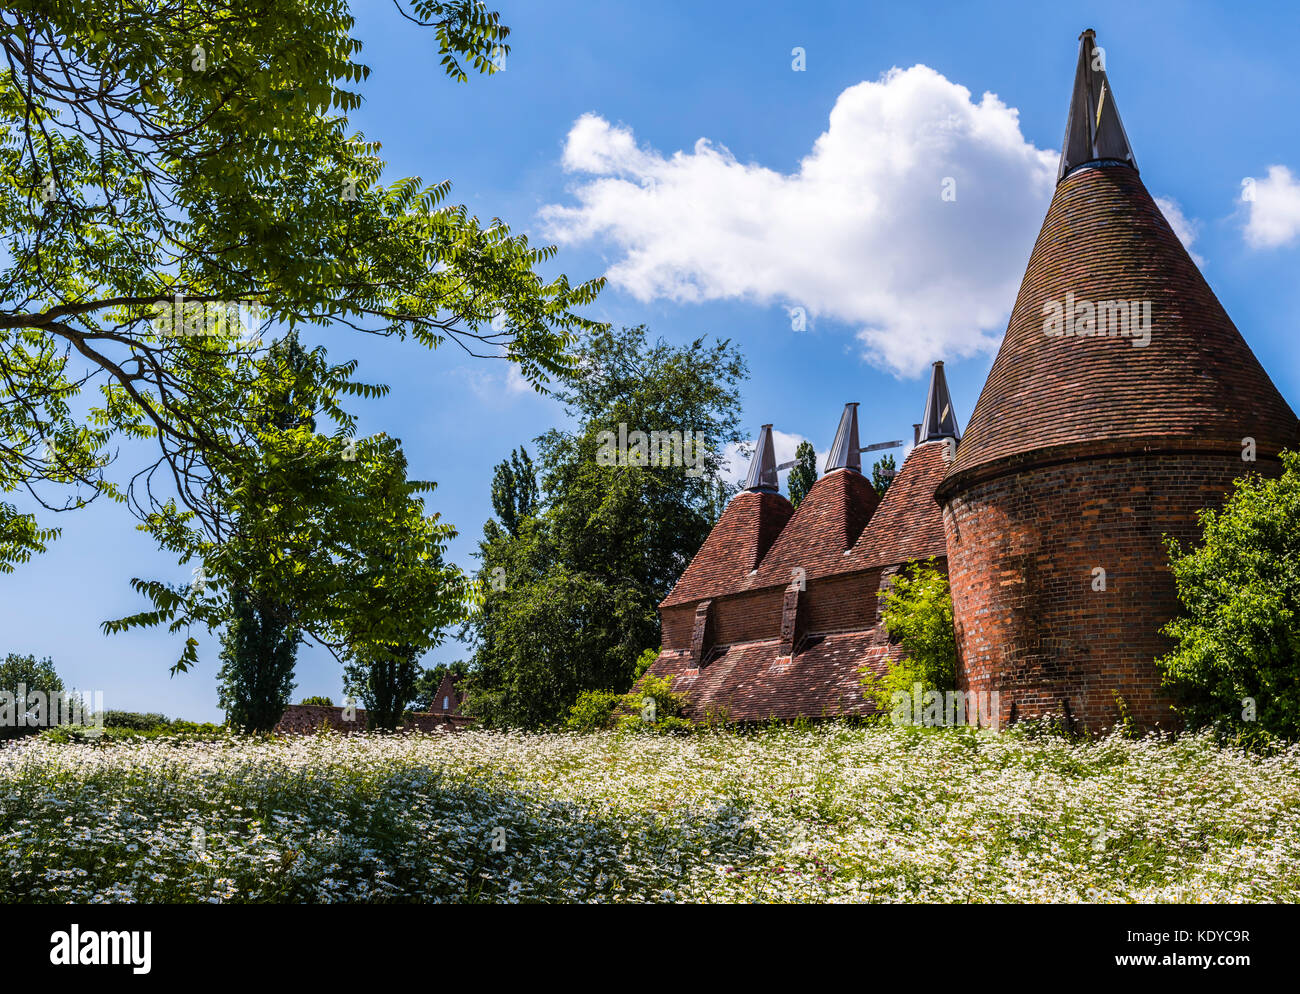 Ancient oast houses at Sissinghurst Gardens, Kent, UK - Stock Image